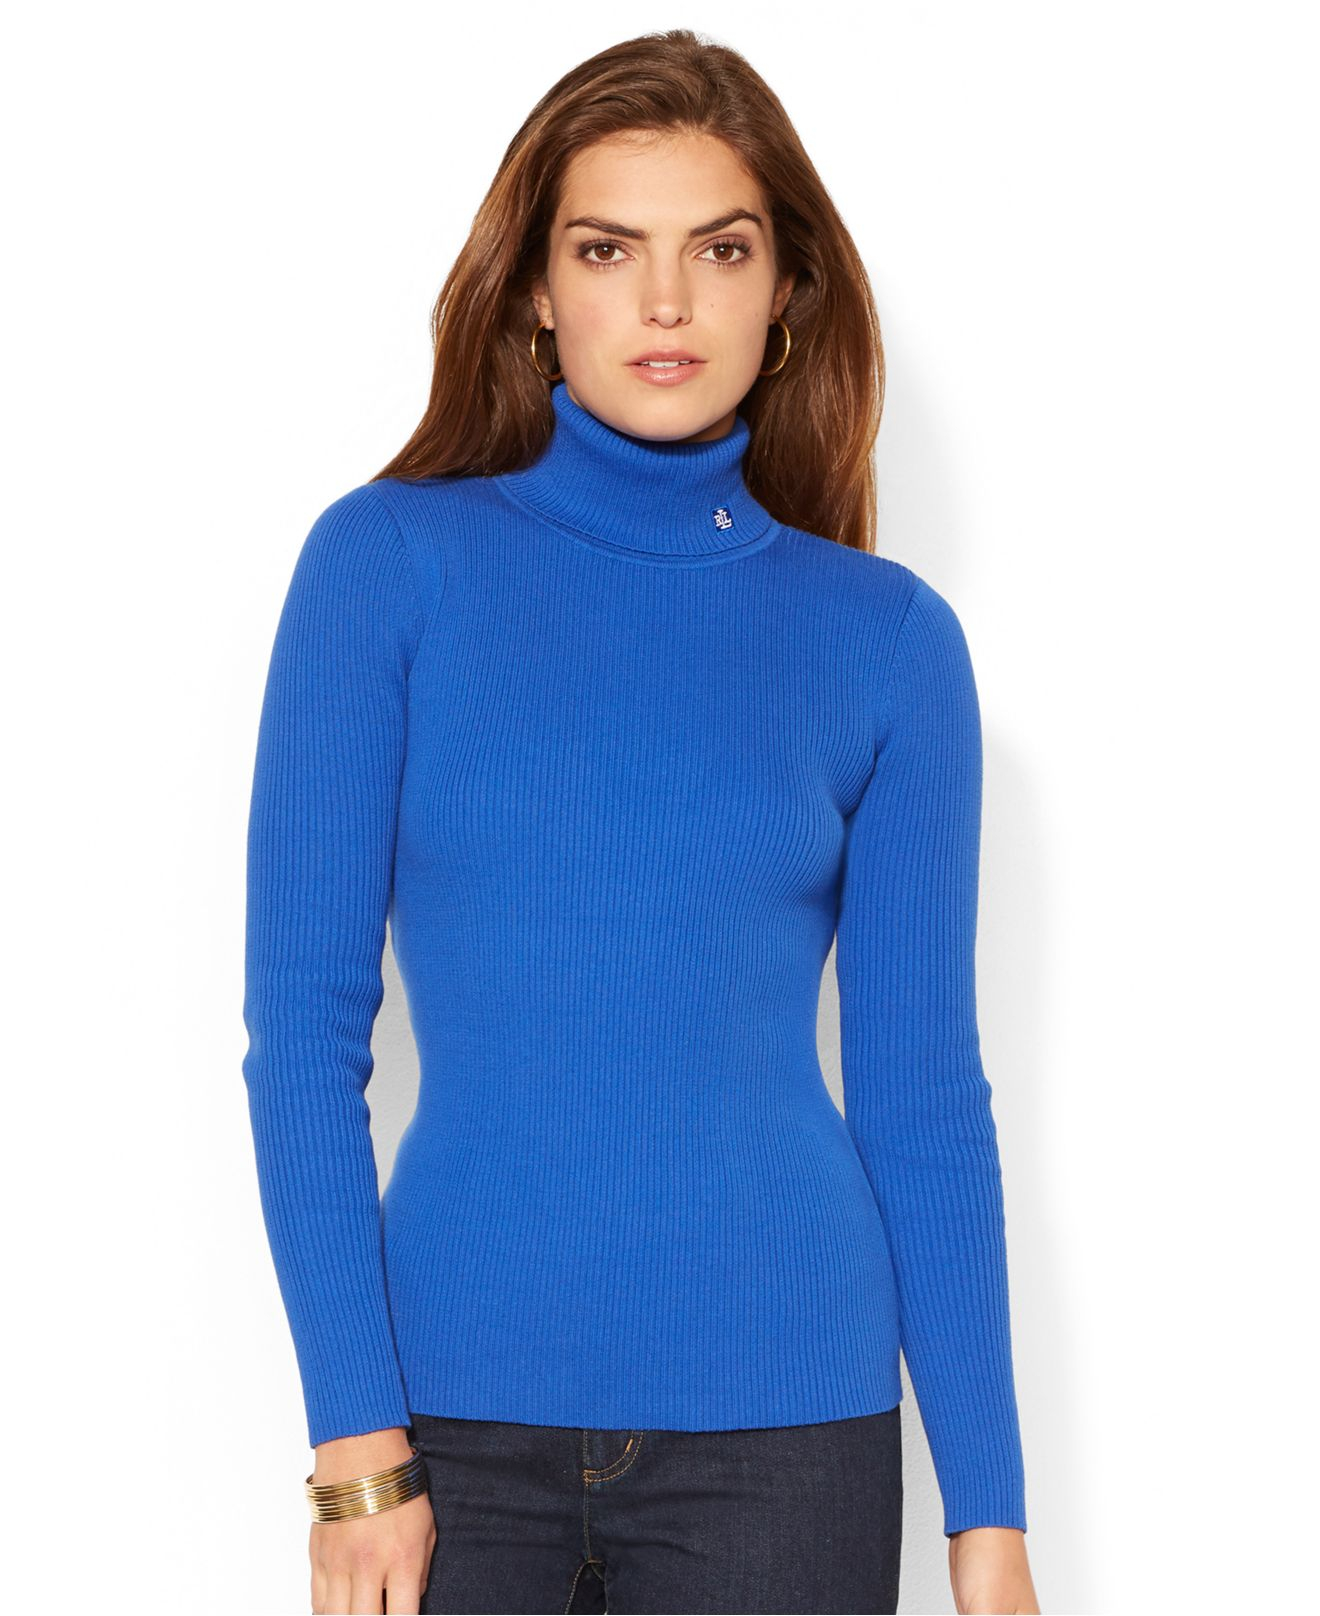 See how others are styling the I Am Chen Turtleneck Sweater - Blue. Check if your friends own the product and find other recommended products to complete the look.